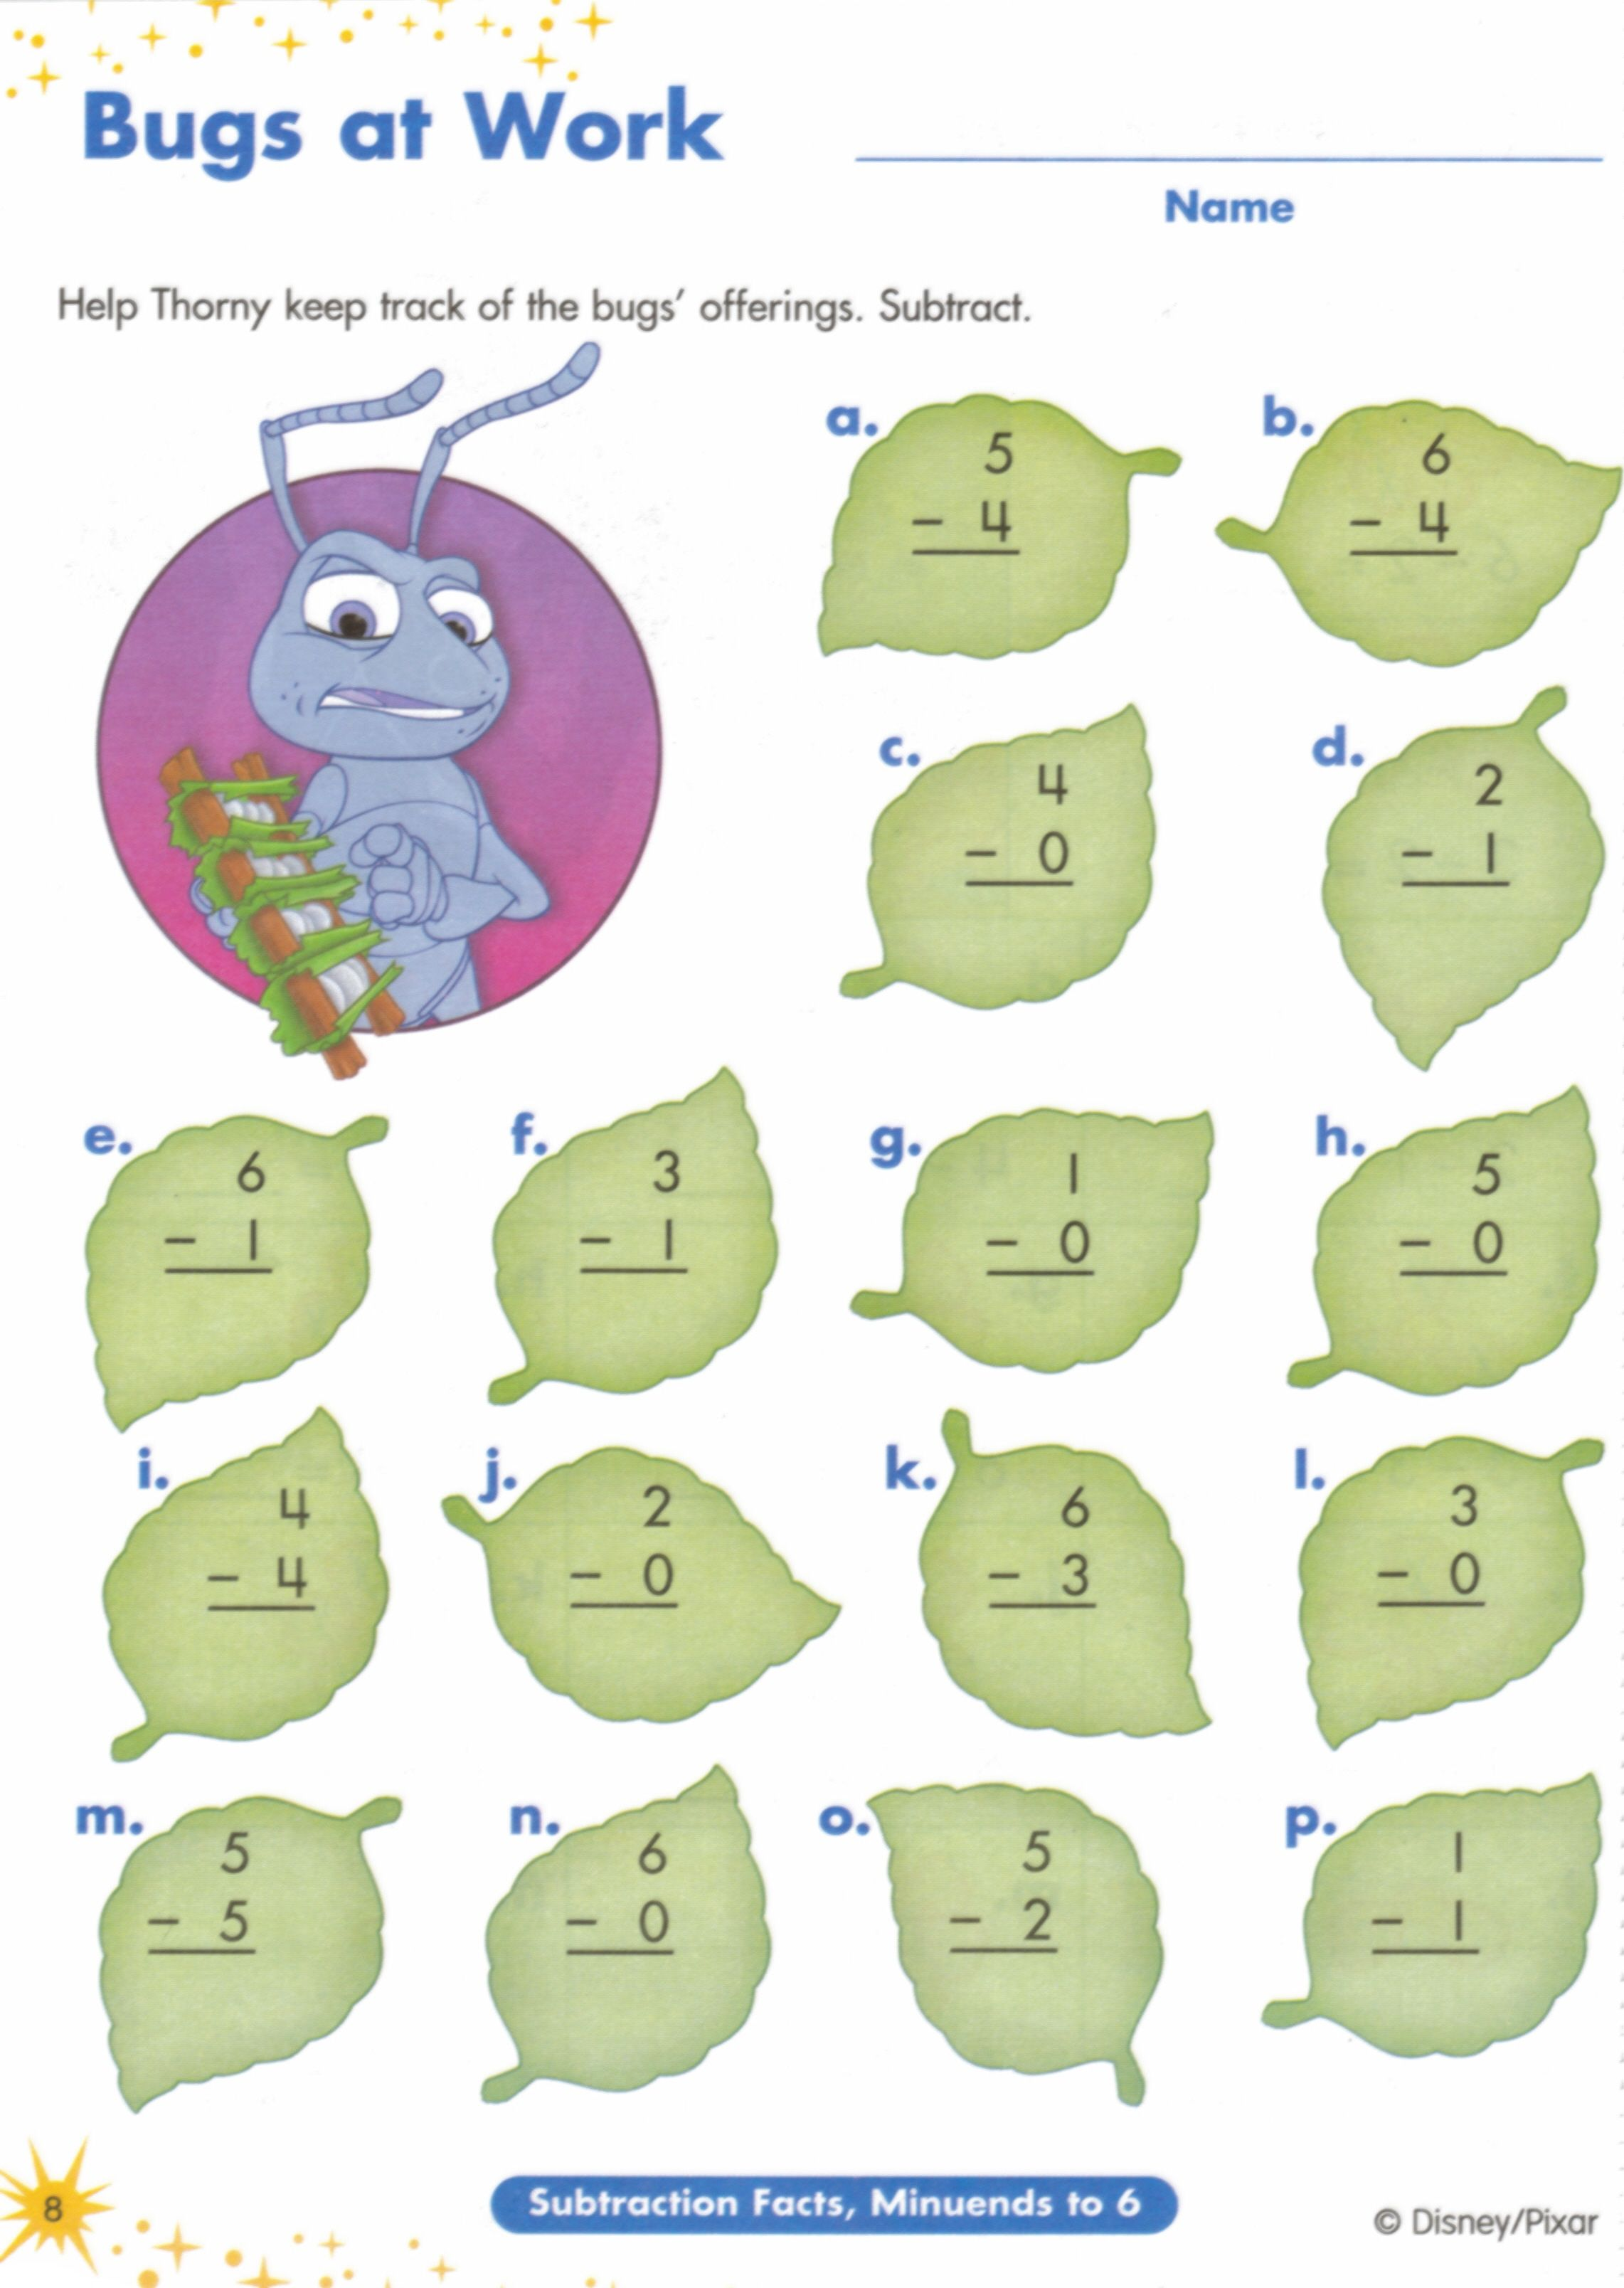 Proatmealus  Unusual  Images About Worksheets On Pinterest  Fun Facts For Kids  With Likable  Images About Worksheets On Pinterest  Fun Facts For Kids Earth Day Worksheets And Jungles With Cool X Tables Worksheets Also Equivalent Fractions Worksheet Year  In Addition Arithmetic Practice Worksheets And Different Types Of Angles Worksheet As Well As Number Worksheet For Preschoolers Additionally Worksheet On Good Manners From Pinterestcom With Proatmealus  Likable  Images About Worksheets On Pinterest  Fun Facts For Kids  With Cool  Images About Worksheets On Pinterest  Fun Facts For Kids Earth Day Worksheets And Jungles And Unusual X Tables Worksheets Also Equivalent Fractions Worksheet Year  In Addition Arithmetic Practice Worksheets From Pinterestcom